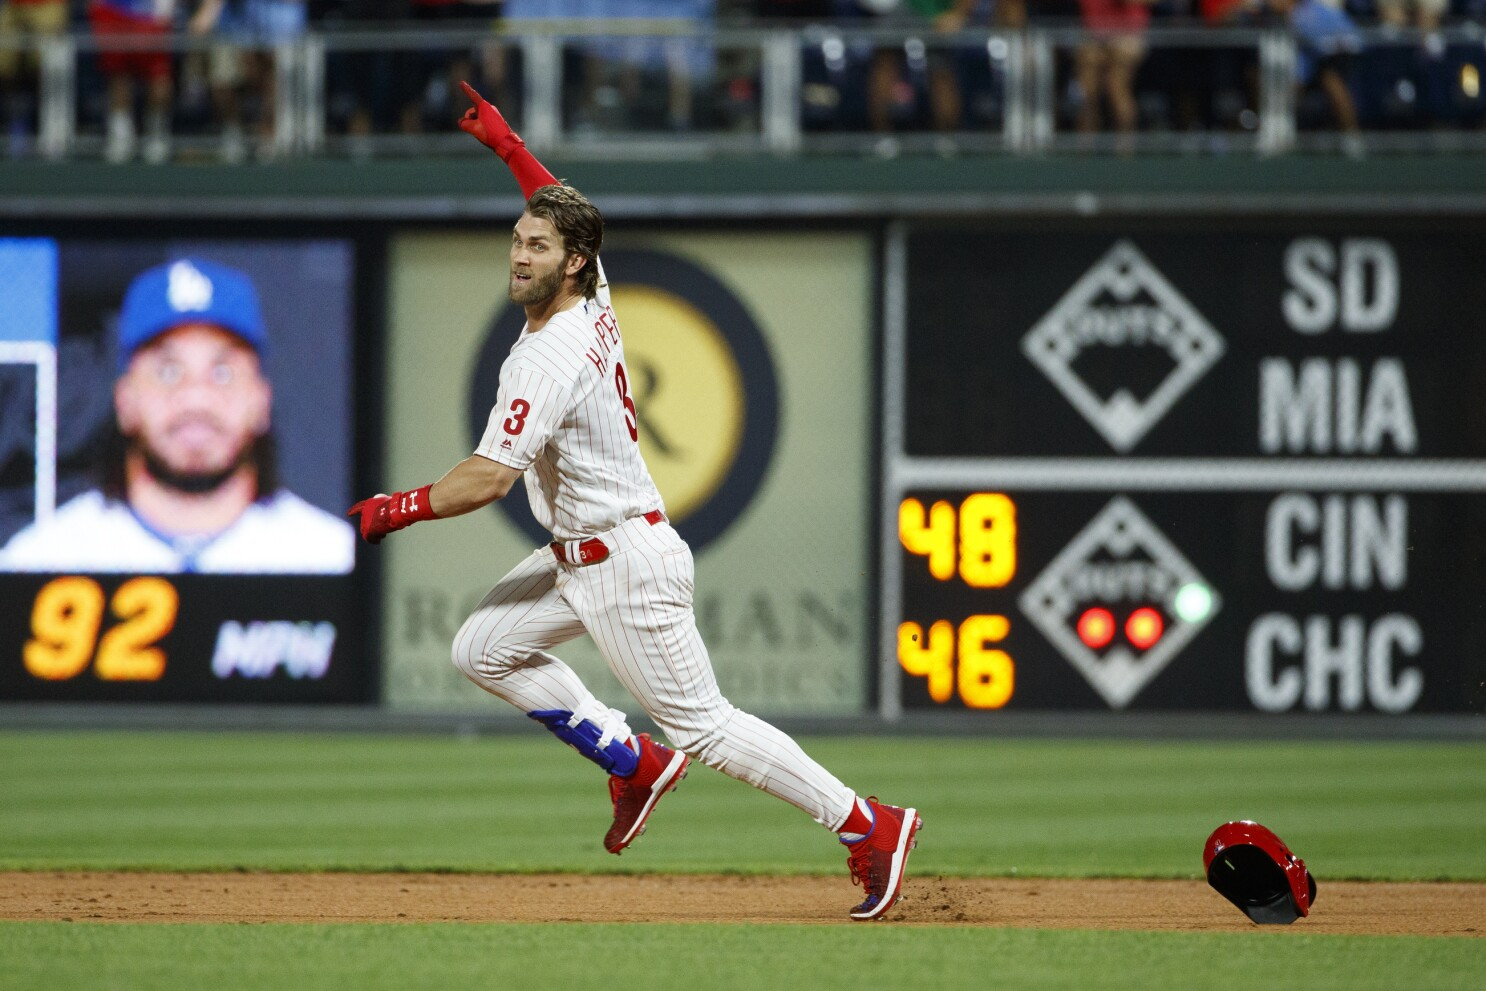 Bryce Harper delivers walk-off double as Phillies down Dodgers - Los Angeles Times